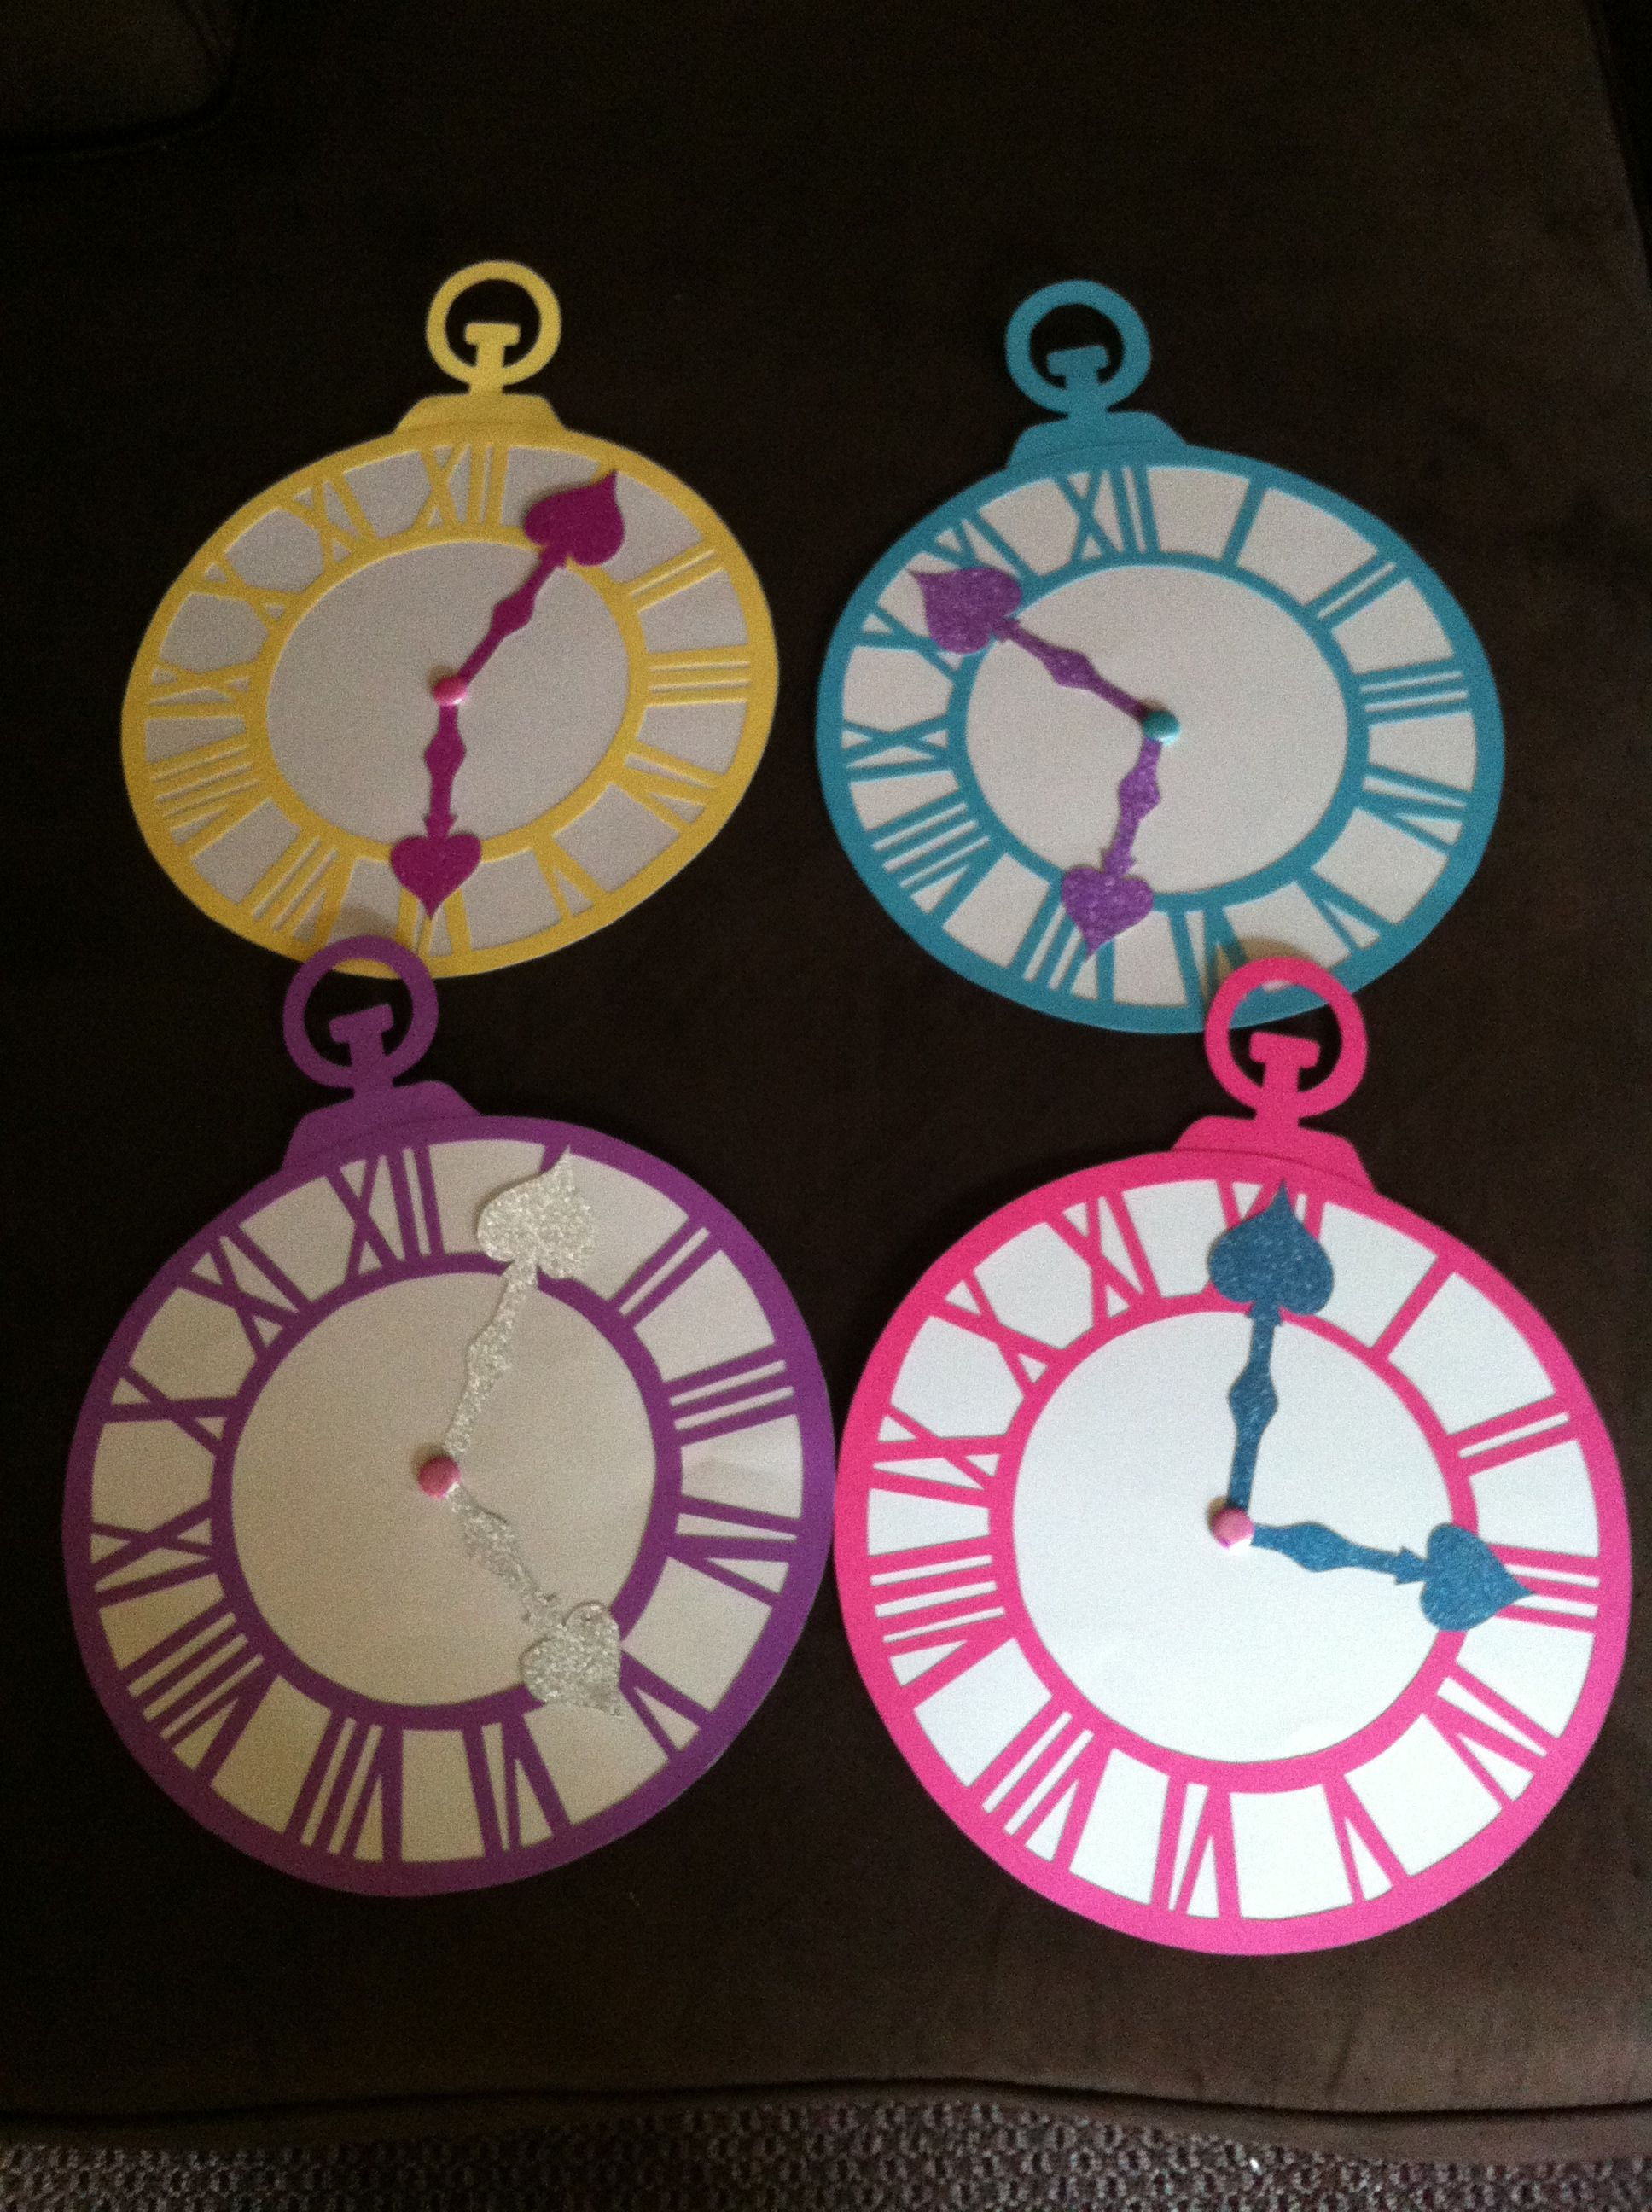 Alice In Wonderland Party Clock Decor Pais De Las Maravillas